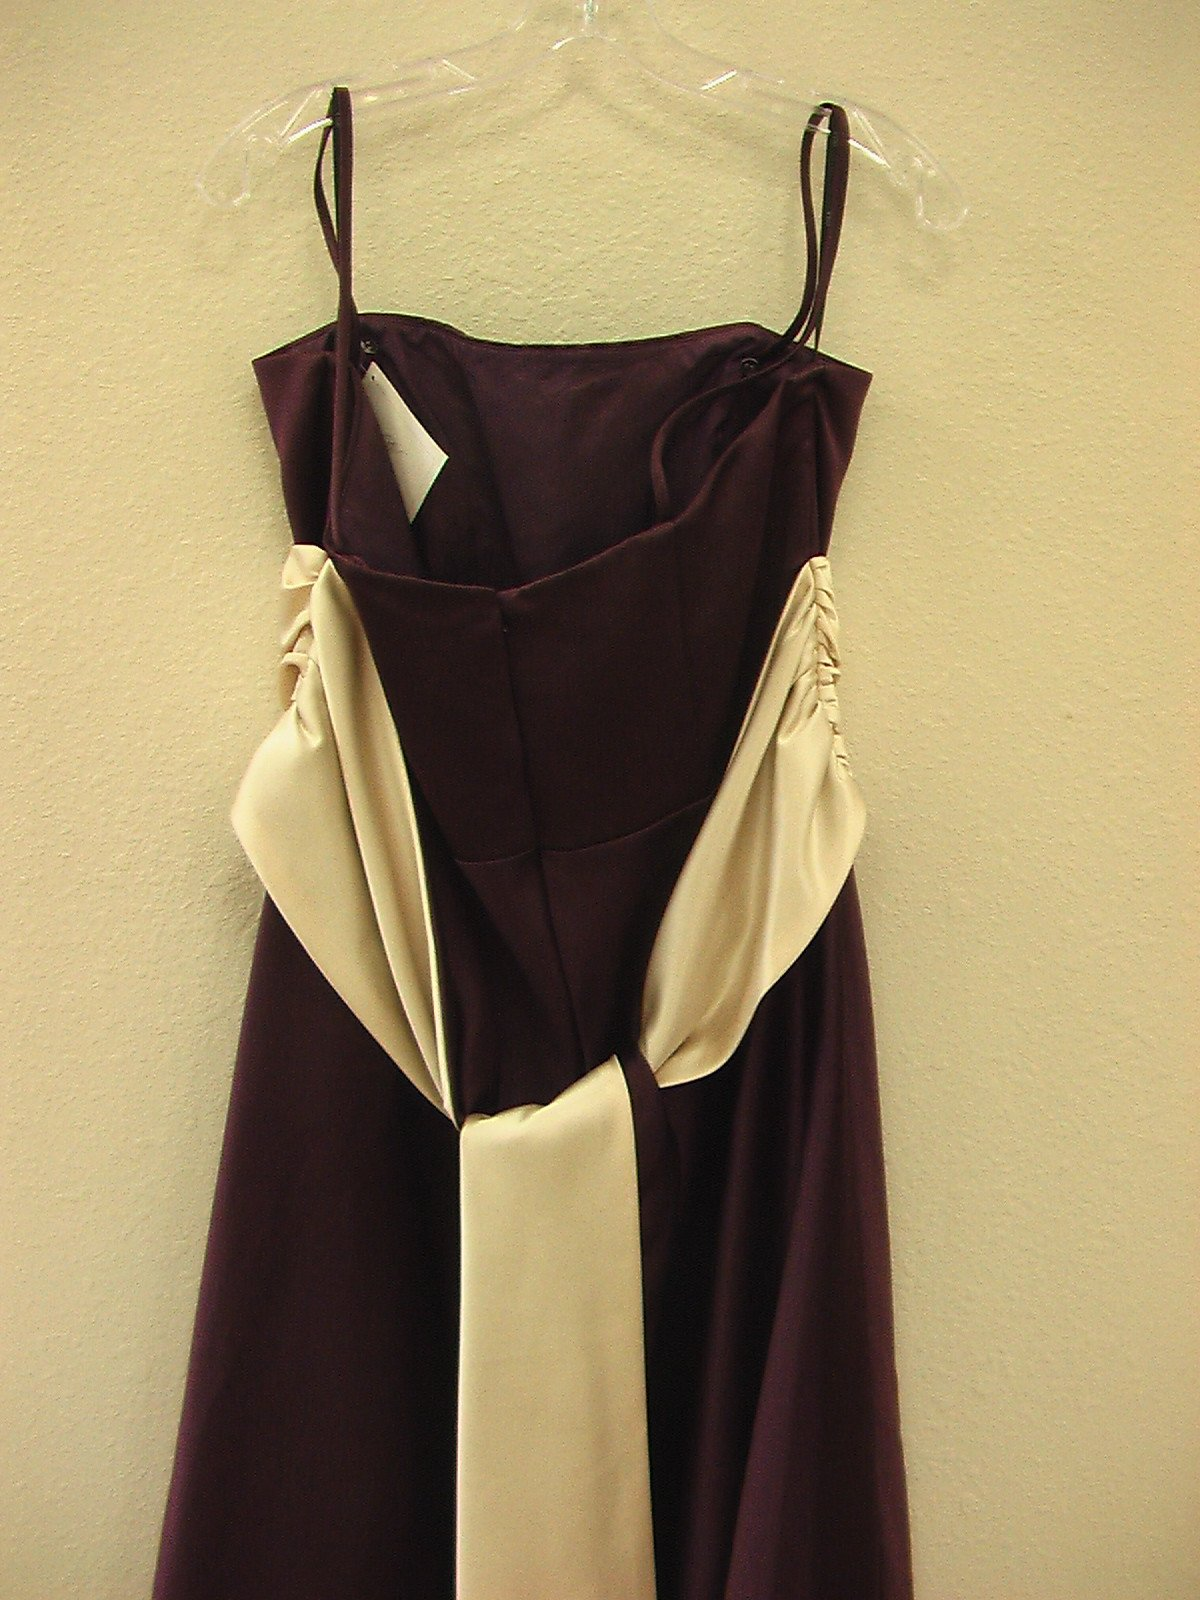 Wtoo 443 Plum Khaki size 2 In Stock Bridesmaid Dress-NEW - Tom's Bridal